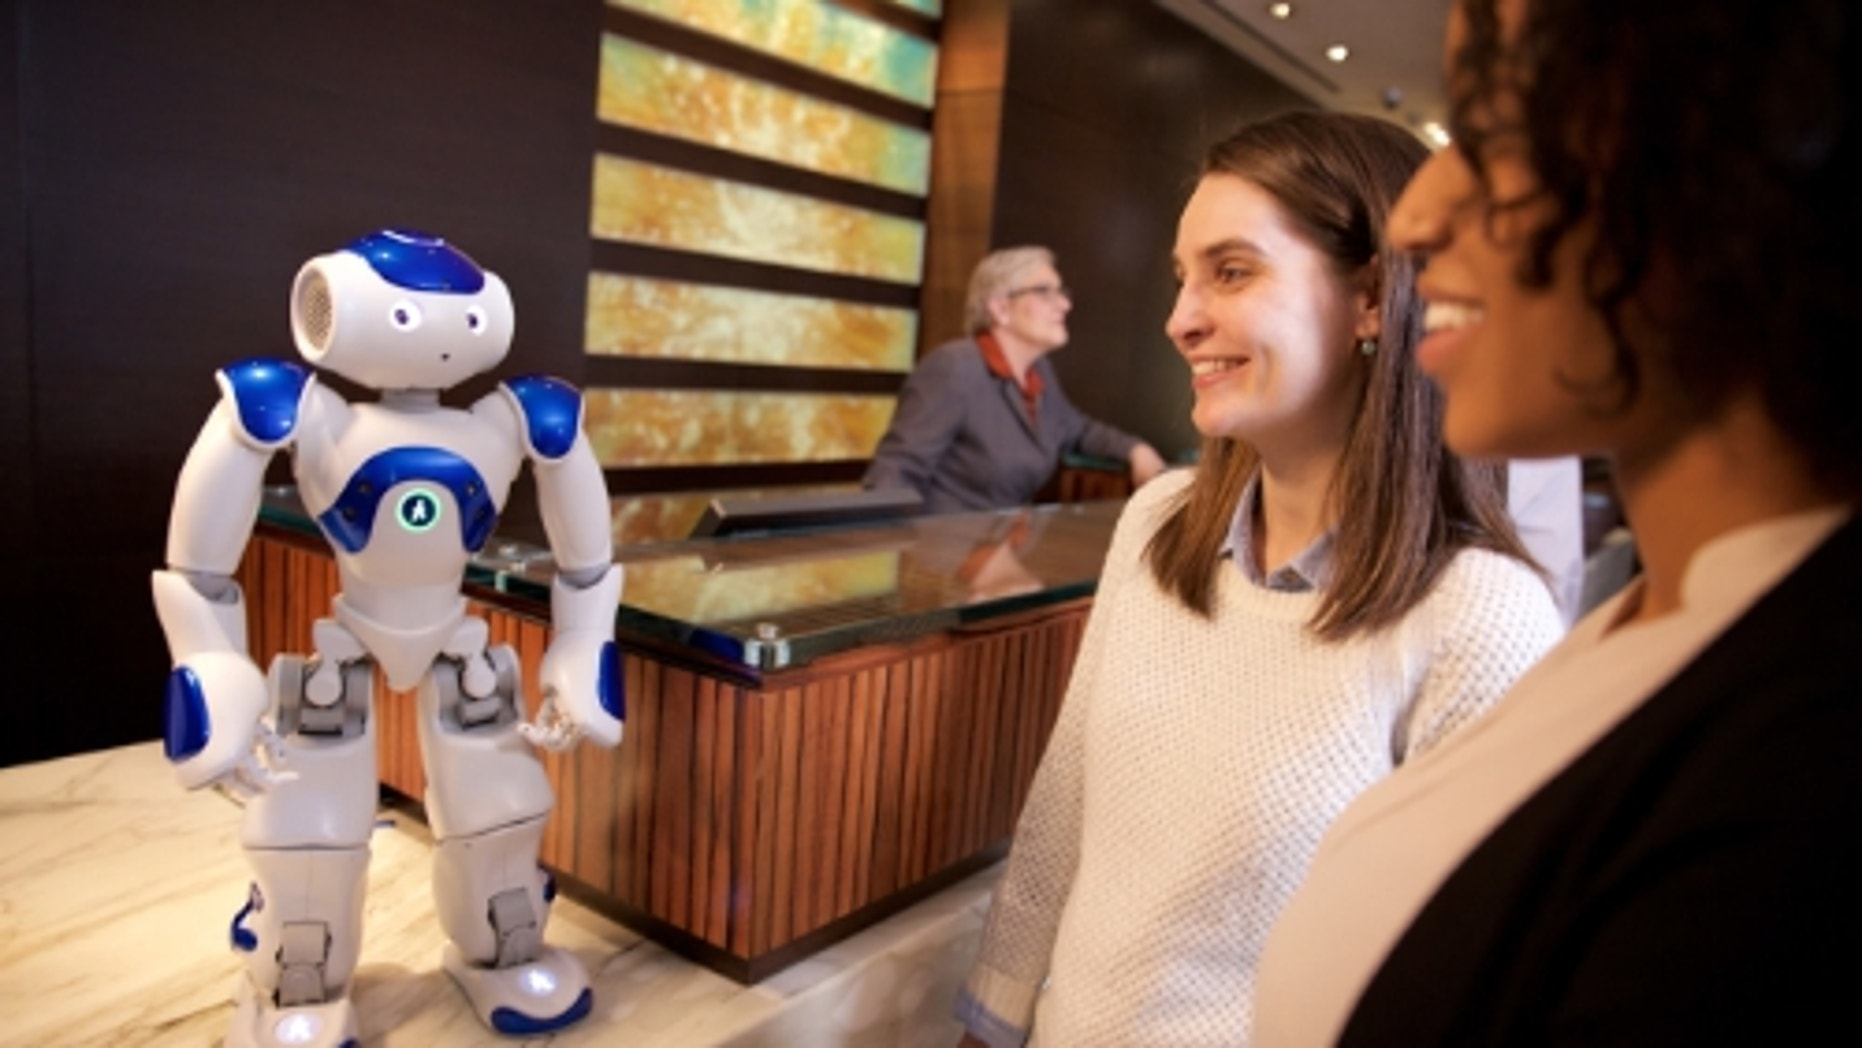 """Visitors to the Hilton Hotel in McLean, Va. meet """"Connie,"""" a robot concierge named after Conrad Hilton and powered by IBM Watson and WayBlazer. (Photo courtesy of Green Buzz Agency/Feature Photo Service for IBM) (PRNewsFoto/IBM)"""